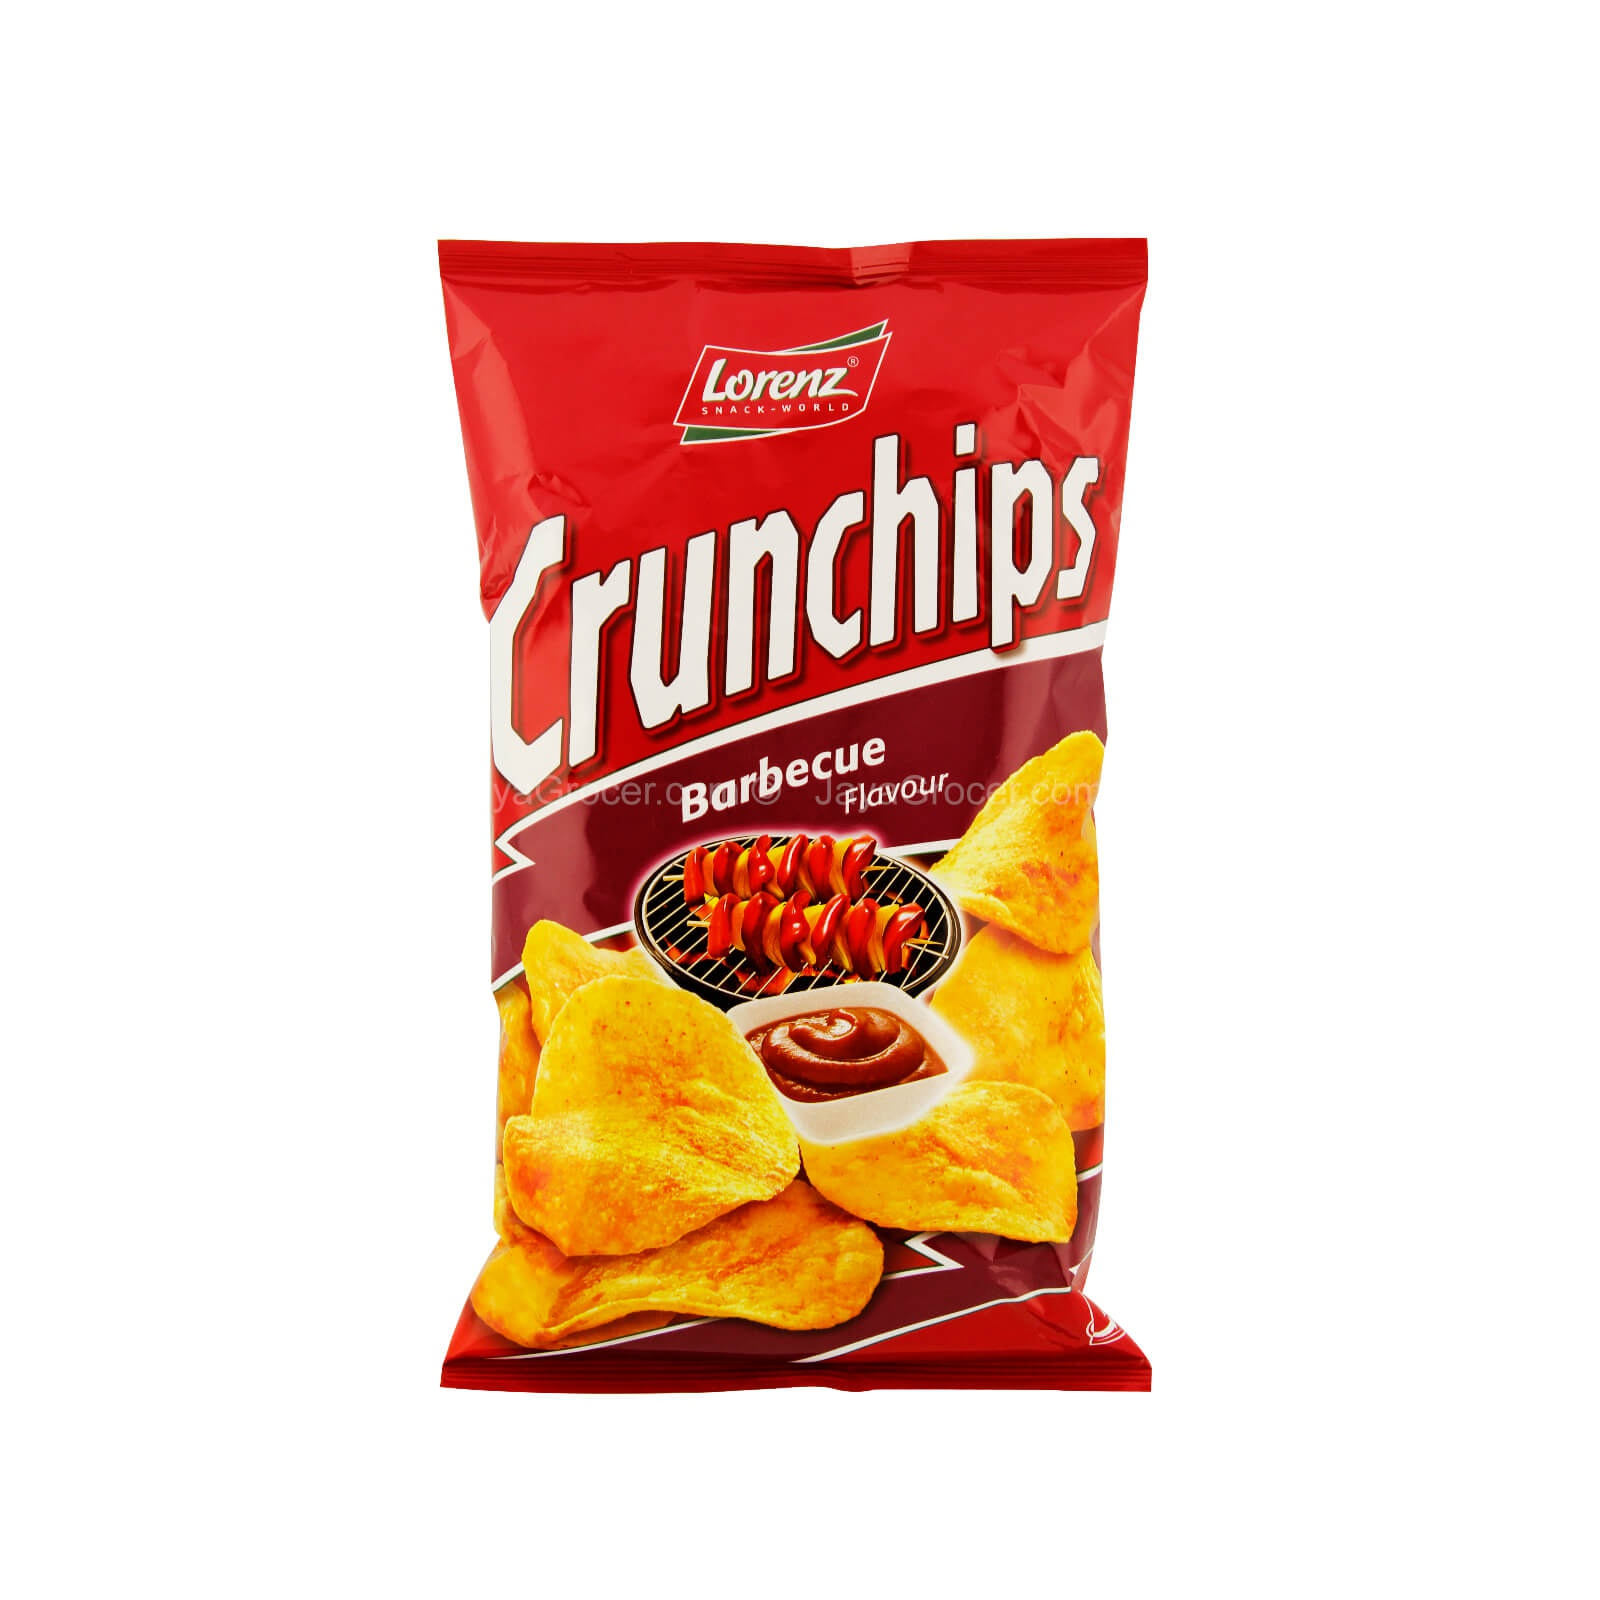 Lorenz Crunchips Barbecue Potato Chips 100g - in Sri Lanka